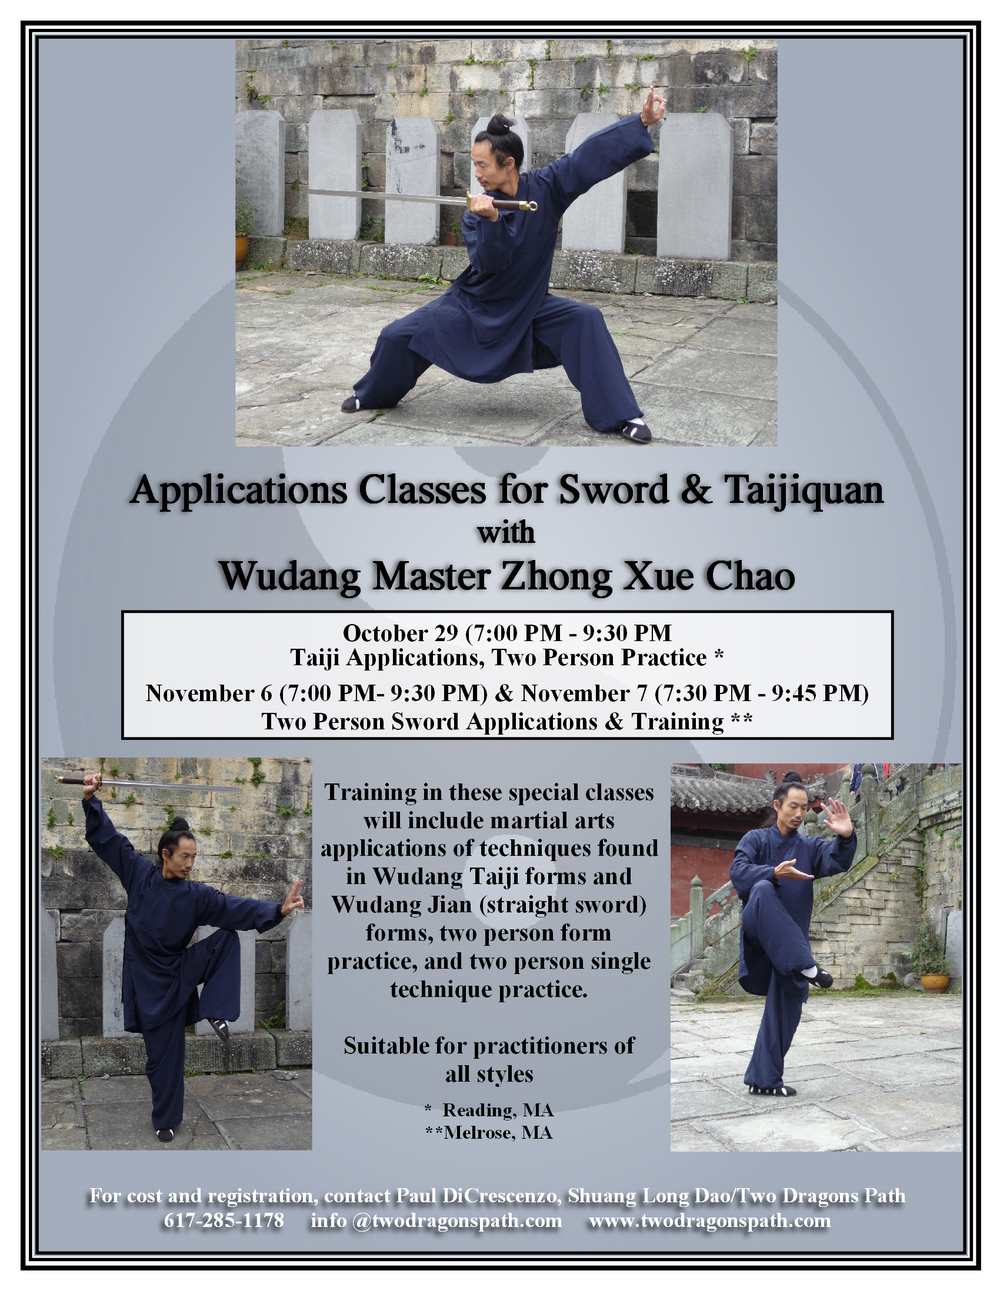 Wudang Sword & Taijiquan Applications